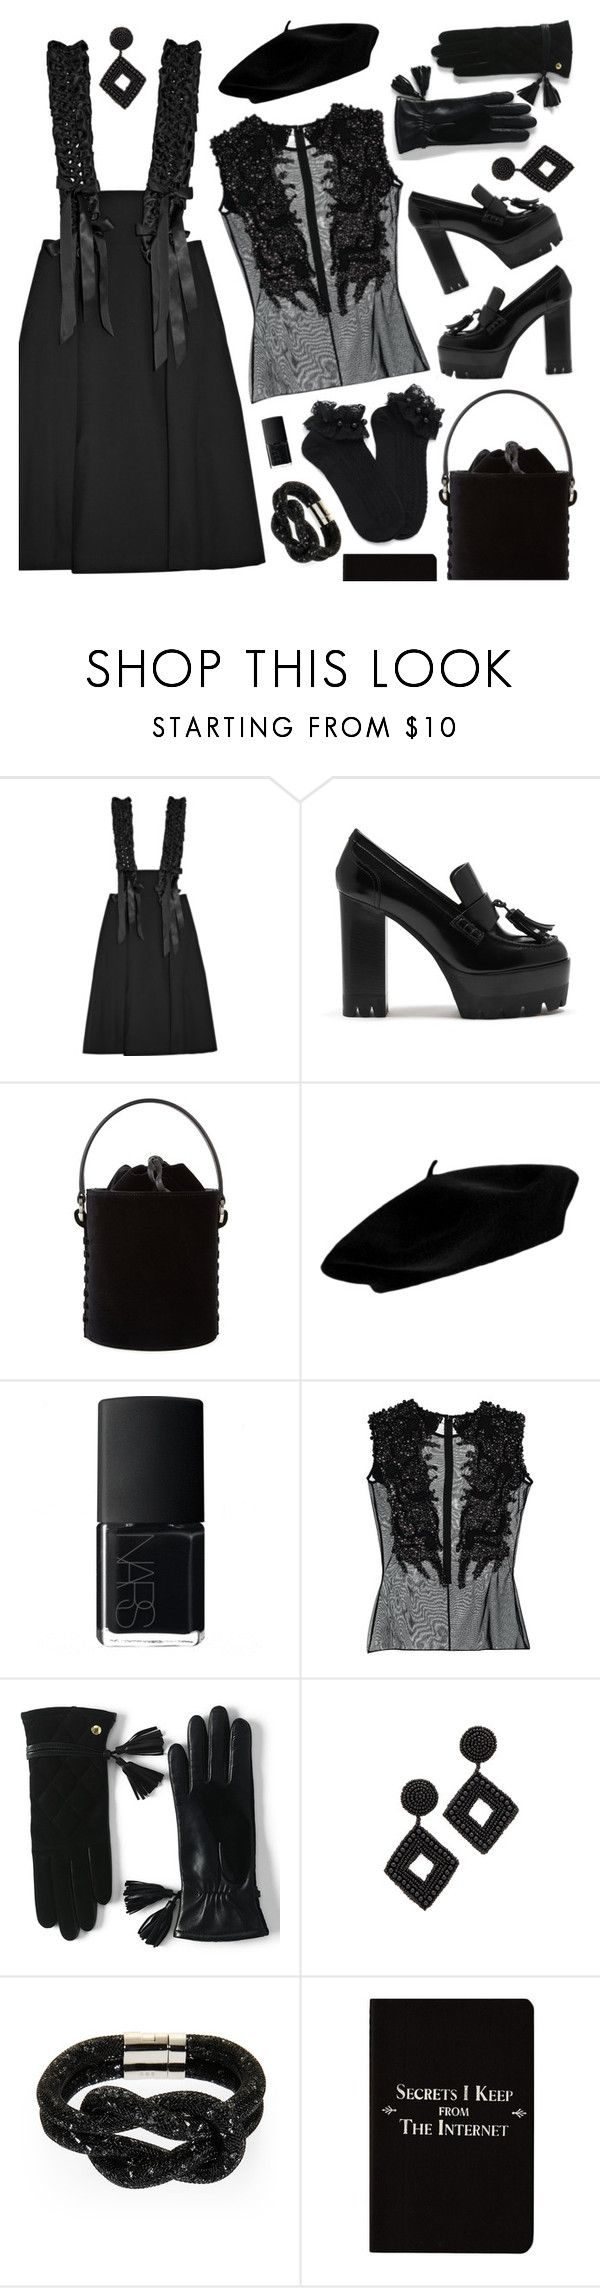 """""""Monochrome: All Black Everything II"""" by jychooi ❤ liked on Polyvore featuring Noir Kei Ninomiya, Mulberry, Meli Melo, NARS Cosmetics, Veil London, Lands' End, Kenneth Jay Lane, Swarovski, Rich and Damned and allblack"""